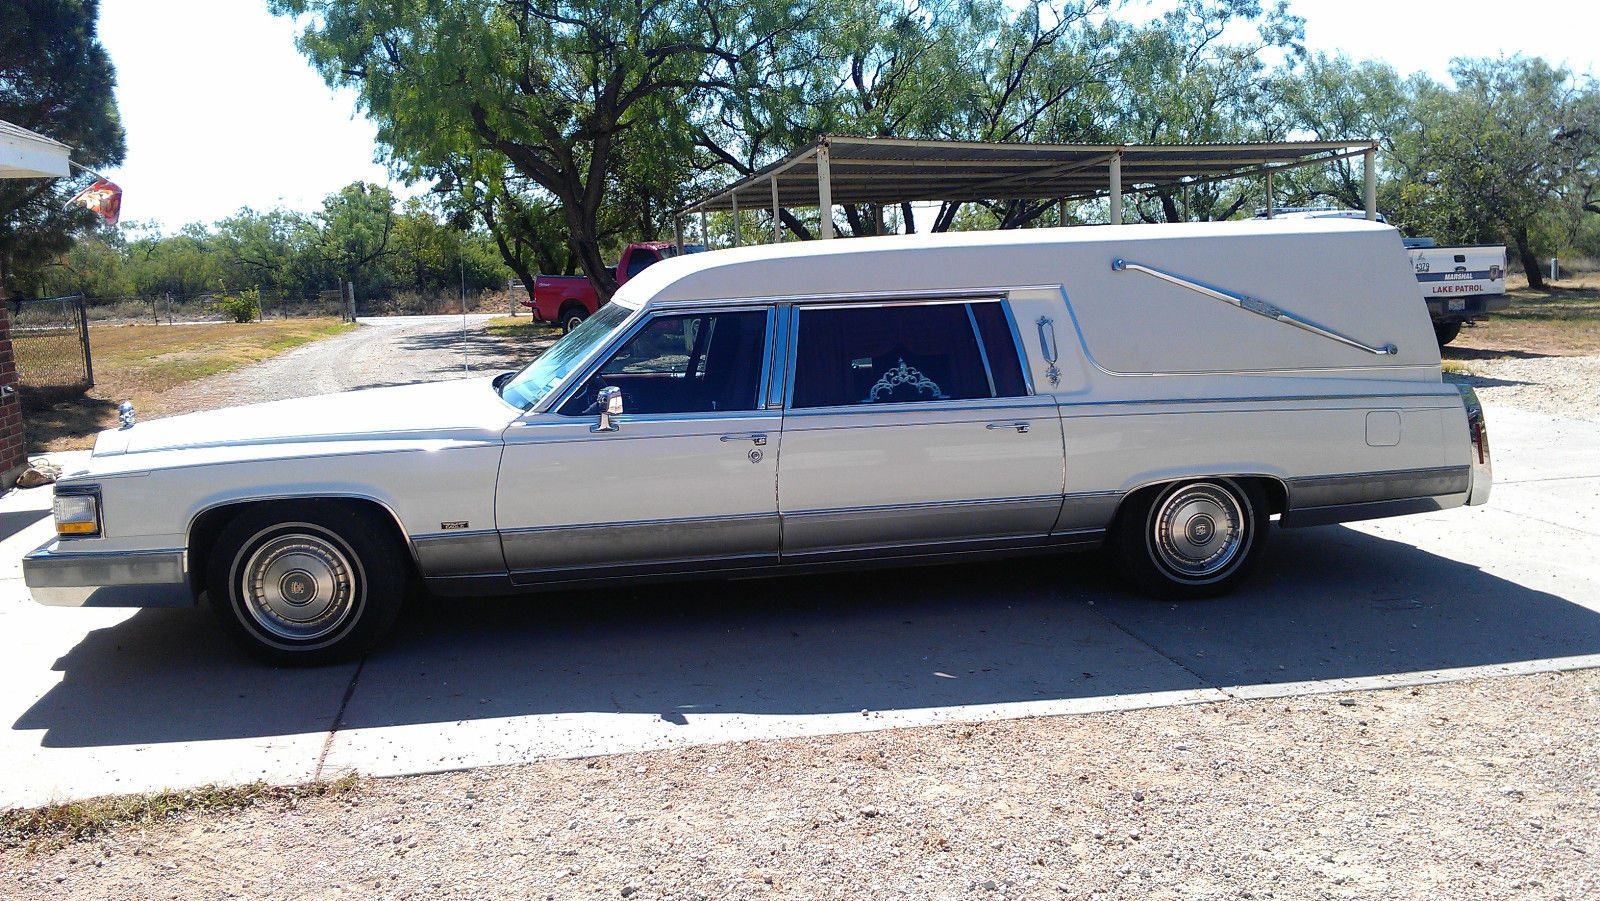 1994 cadillac fleetwood hearse cadillac fleetwood cadillac and fuel injection